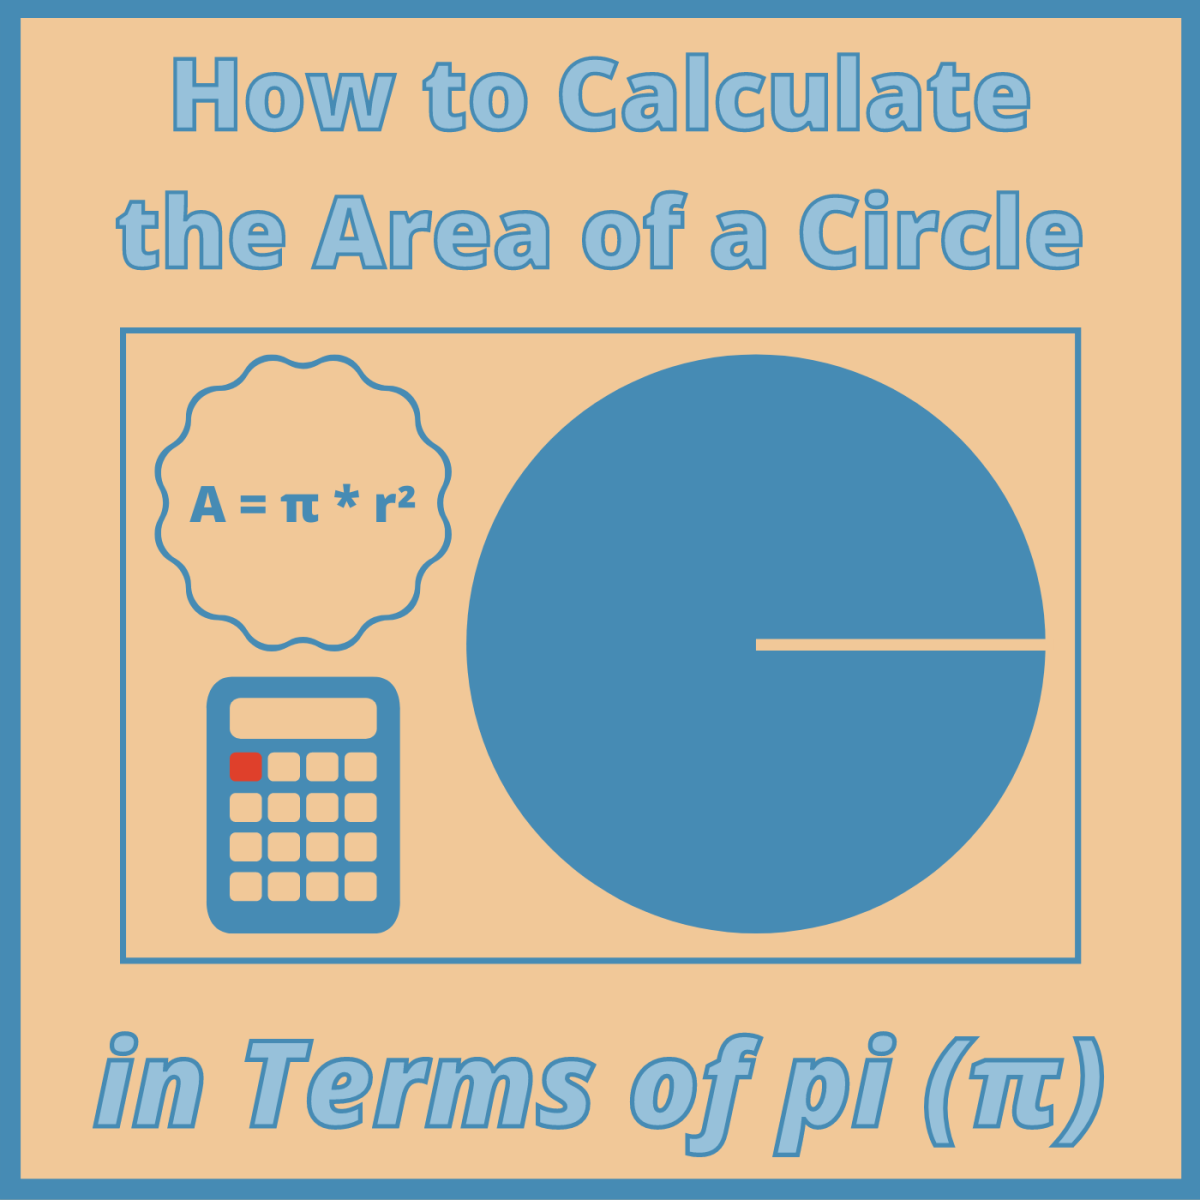 Learn how to calculate the area of a circle and express your answer in terms of pi.